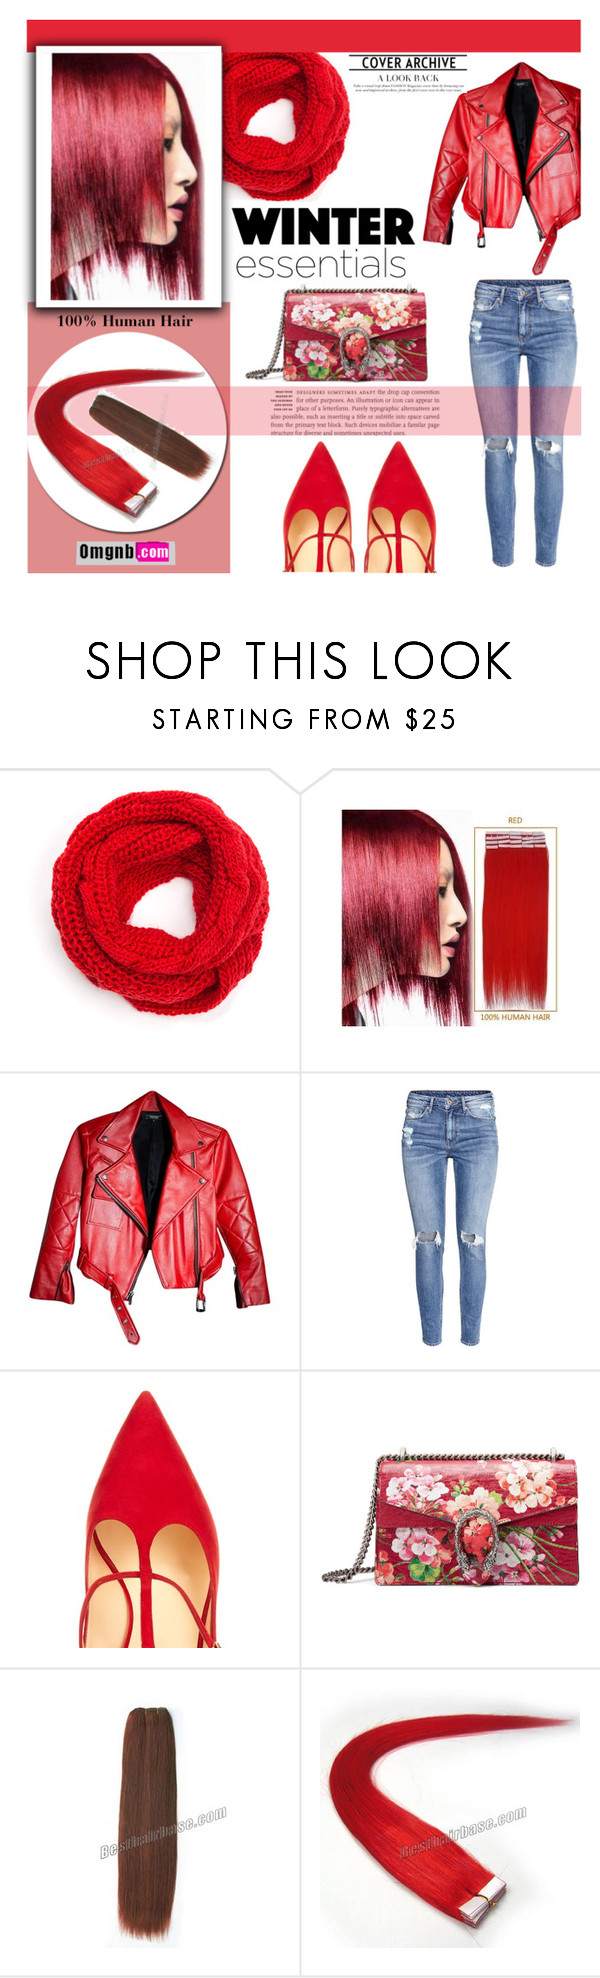 """Omgnb"" by smasy ❤ liked on Polyvore featuring Red Tape, H&M, Christian Louboutin, Gucci and omgnb"